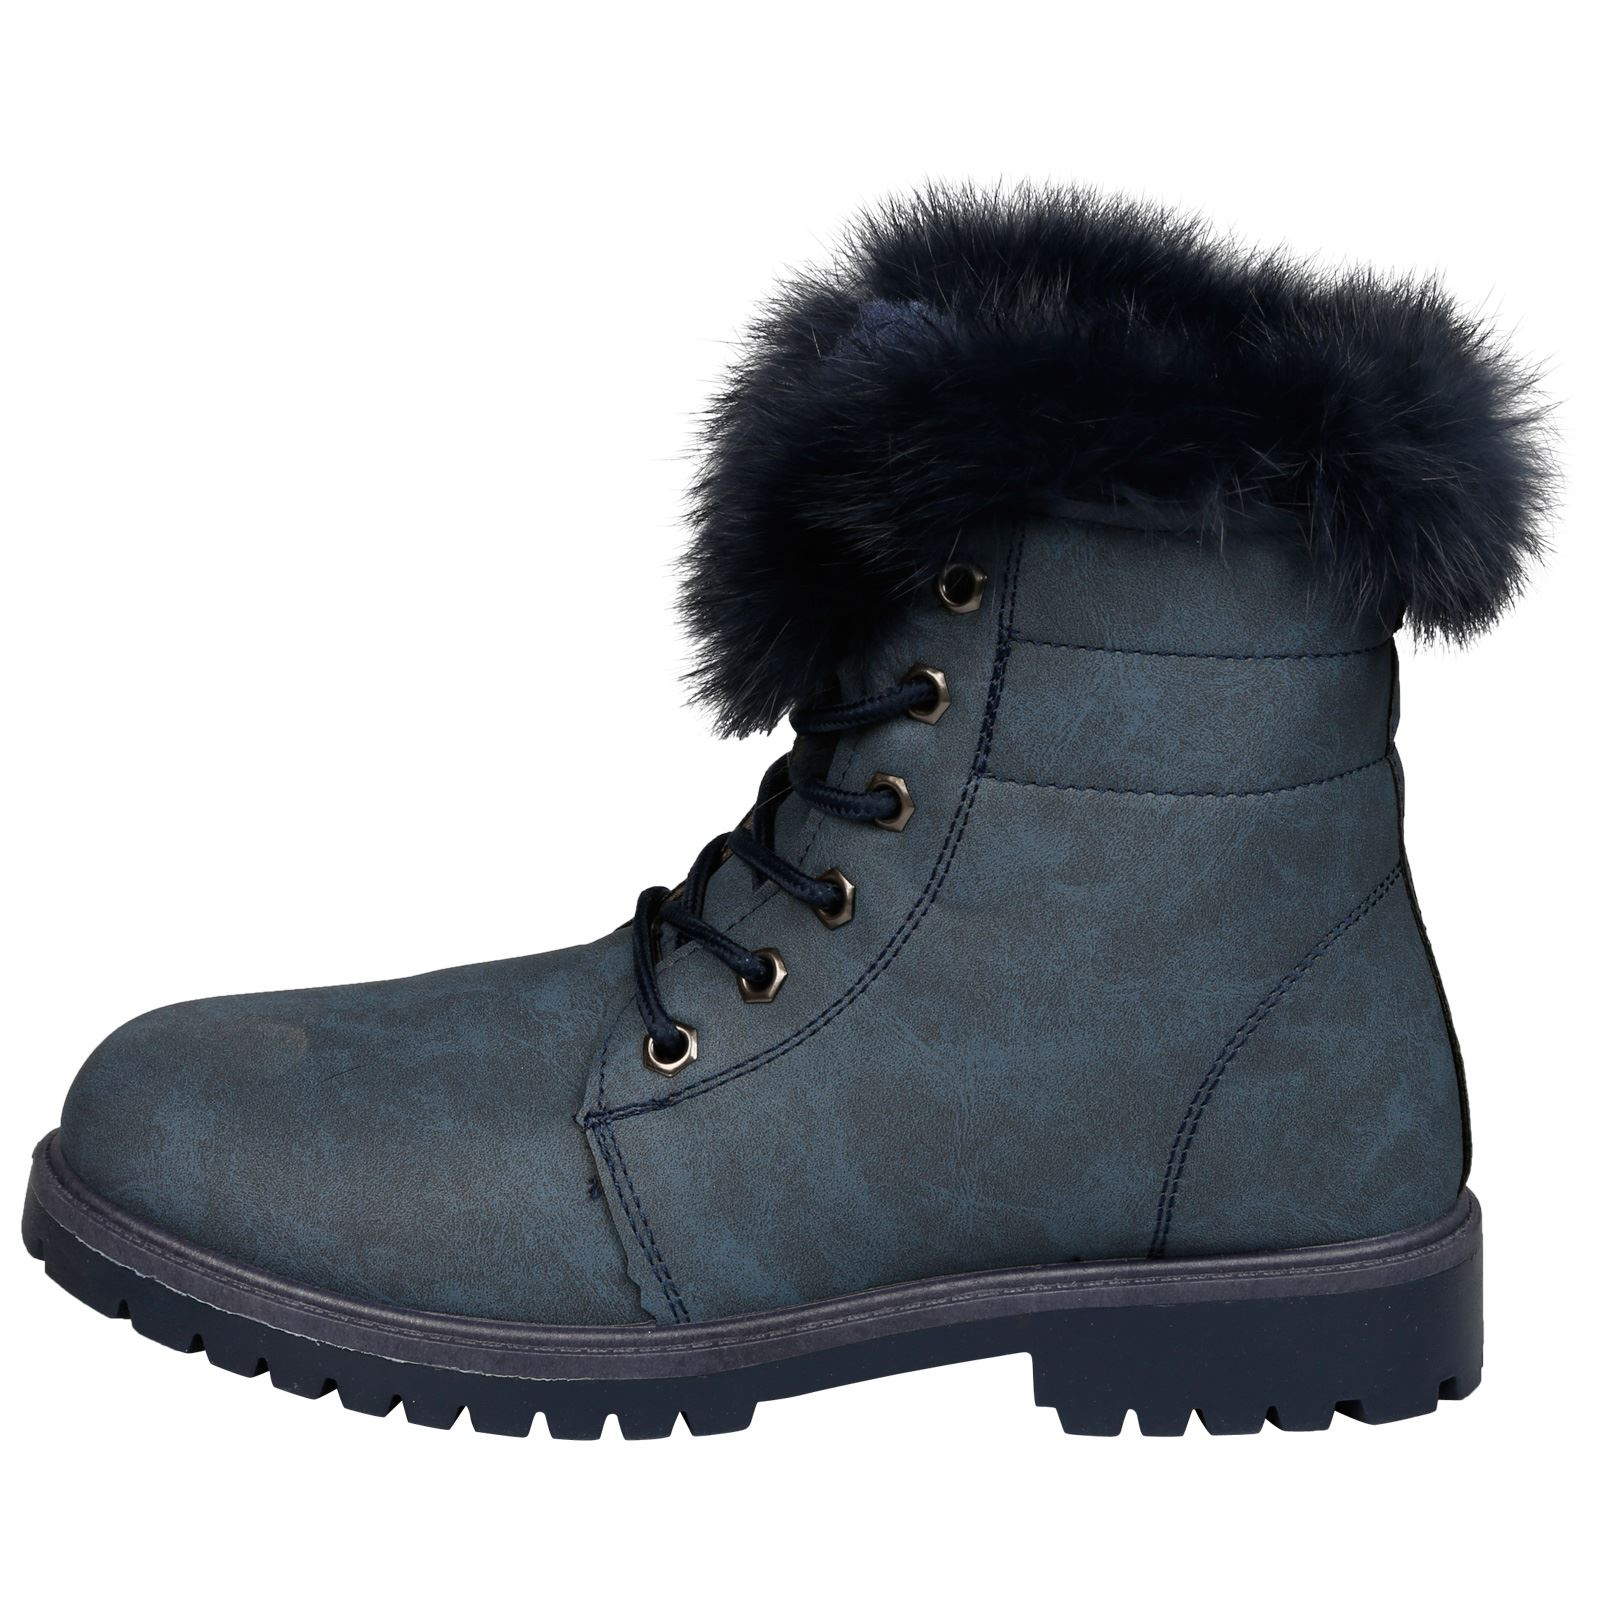 NEW-WOMEN-SHOES-LADIES-FUR-LINED-LOW-HEEL-LACE-UP-ANKLE-BOOTS-CASUAL-STYLE-SIZE thumbnail 24